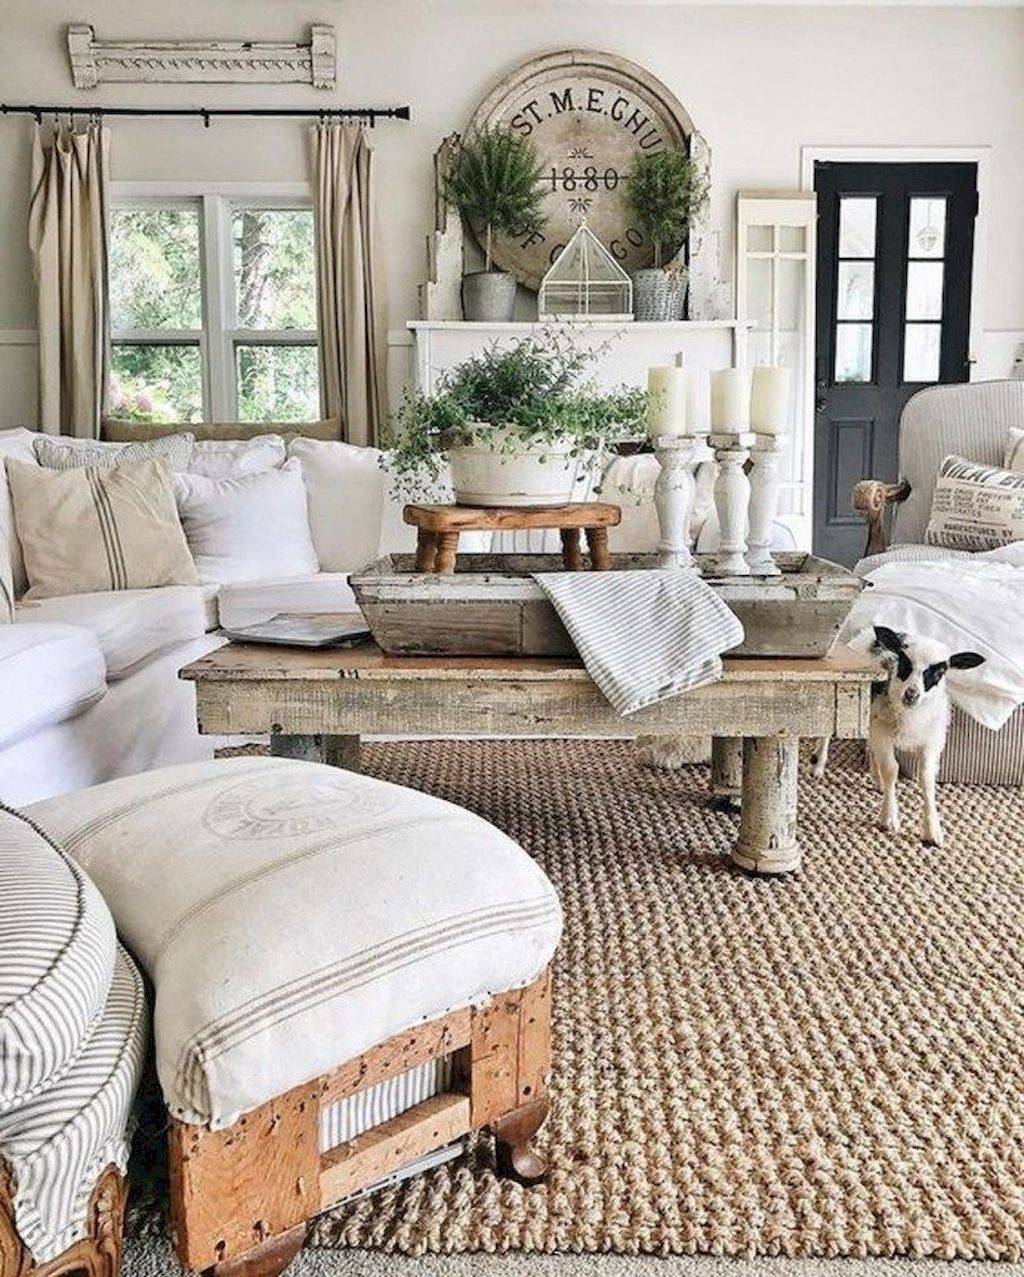 Top 11 Incredible Cozy And Rustic Chic Living Room For: Best Rustic Farmhouse Living Room Decor Ideas (57